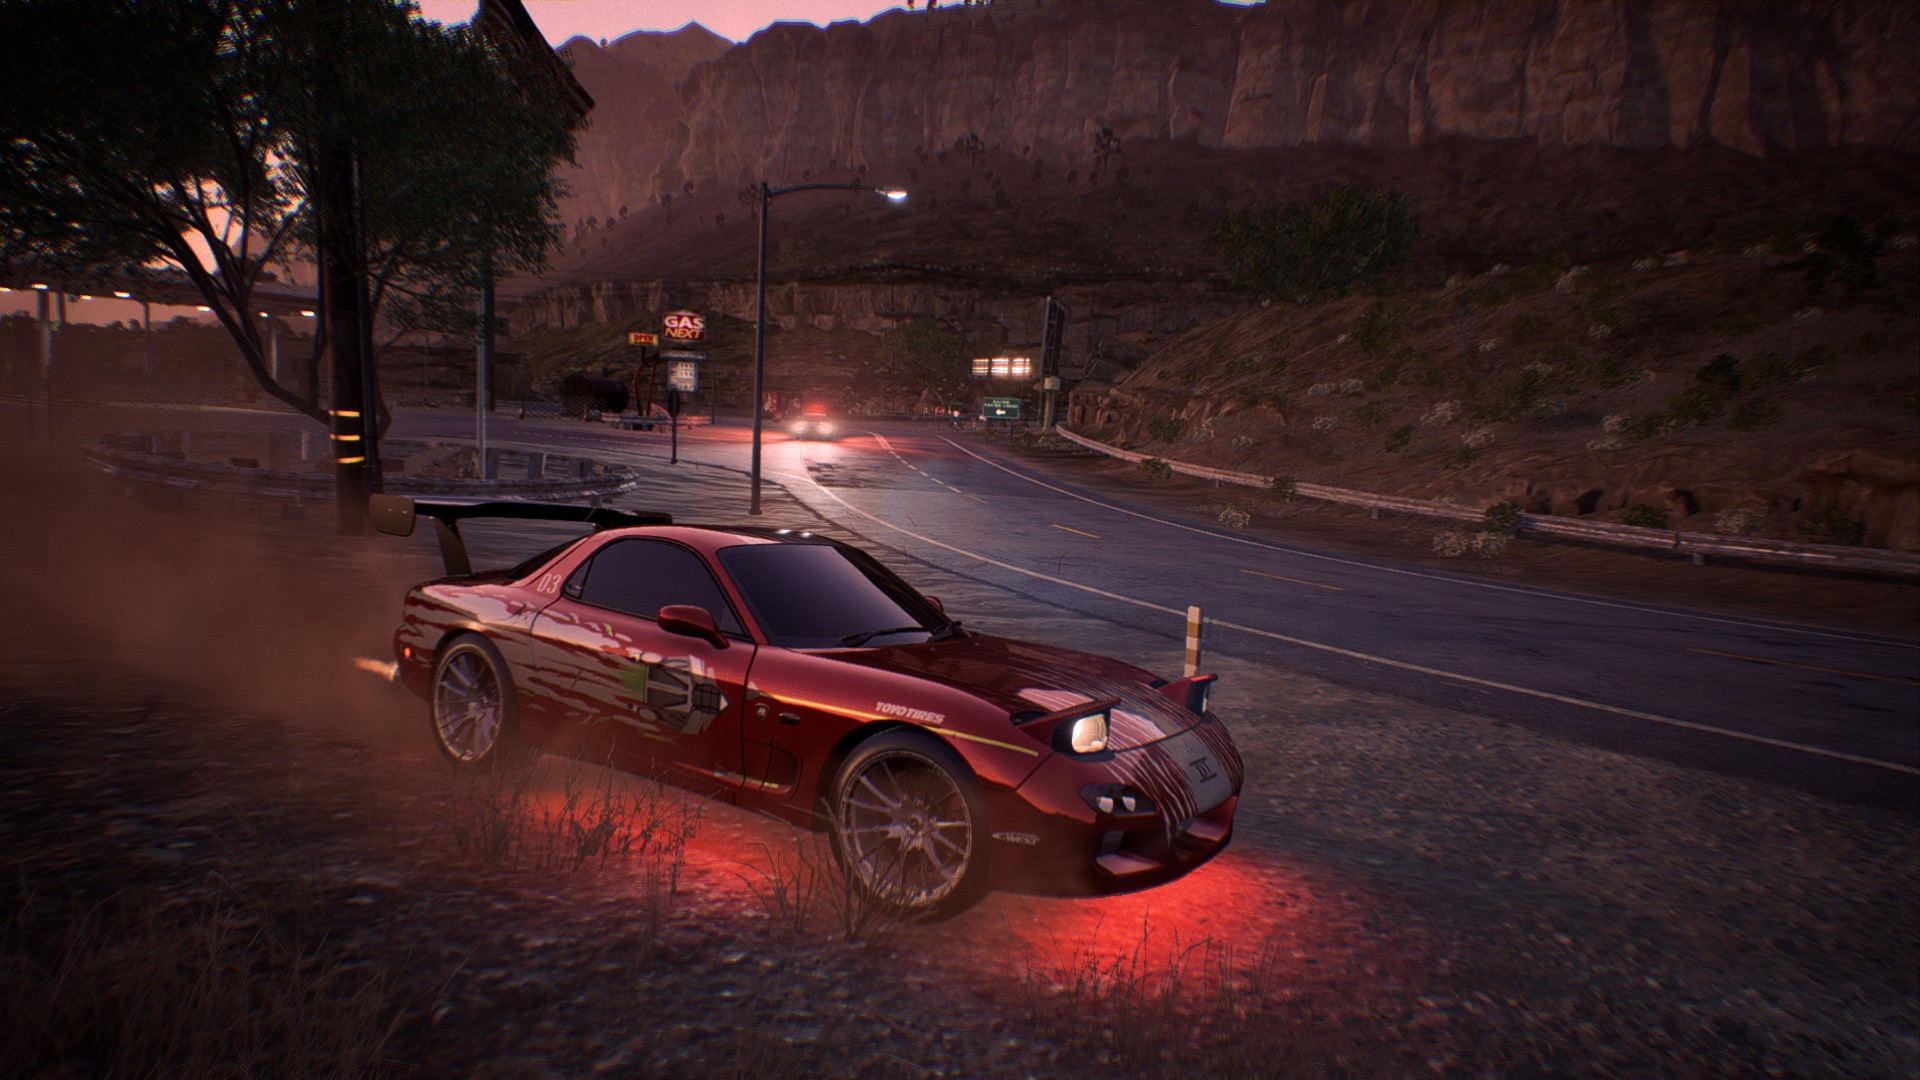 playground payback Windows category: realism need for speed payback is the blockbuster new action driving game from ghost games and ea taking a narrative-focused approach.